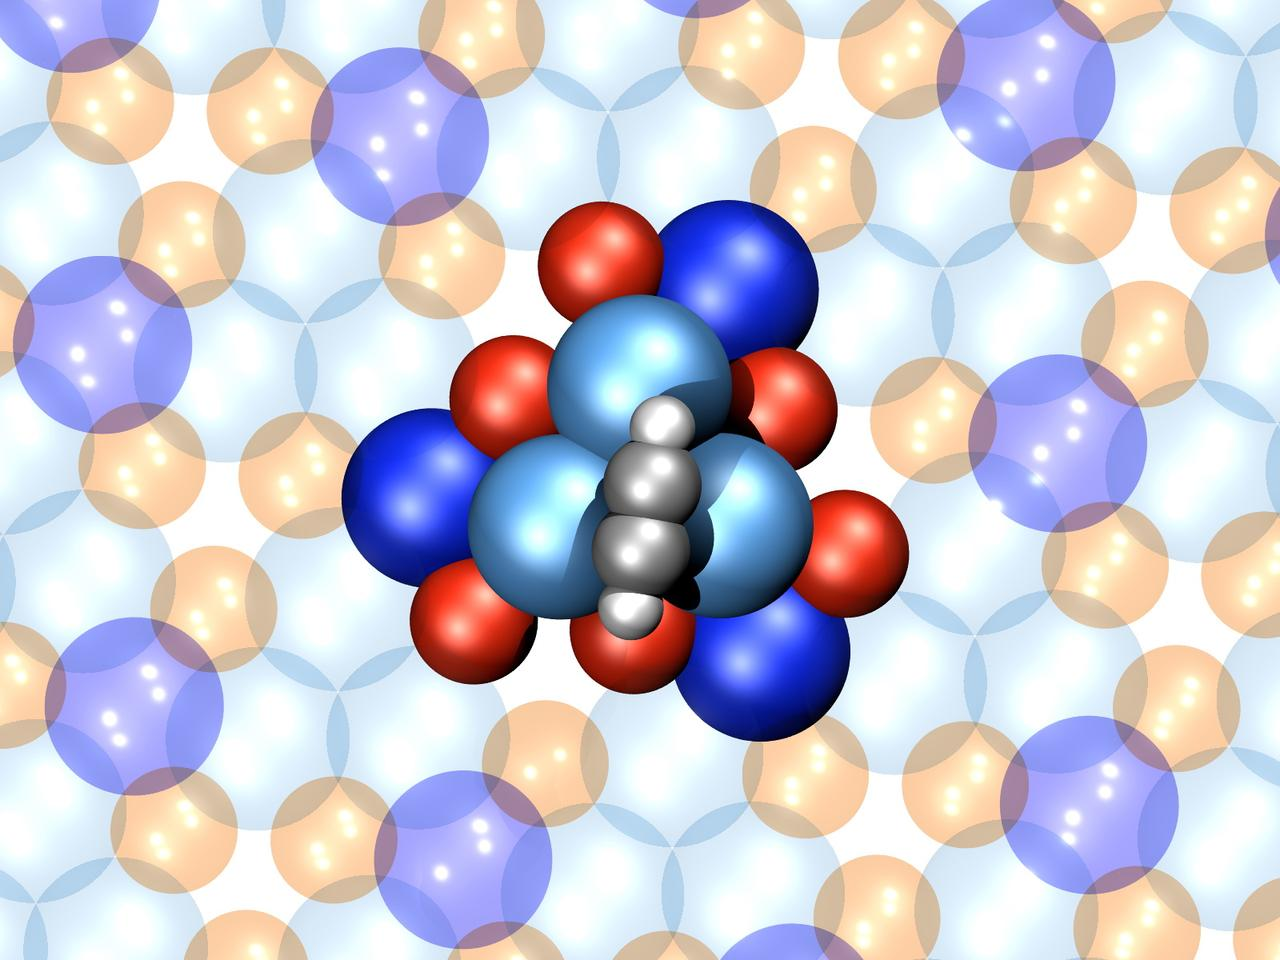 A model of the nano motor – the stator is made up of six palladium atoms (blue) and six gallium atoms (red), with a four-atom rotor made up of a four-atom acetylene molecule (gray)